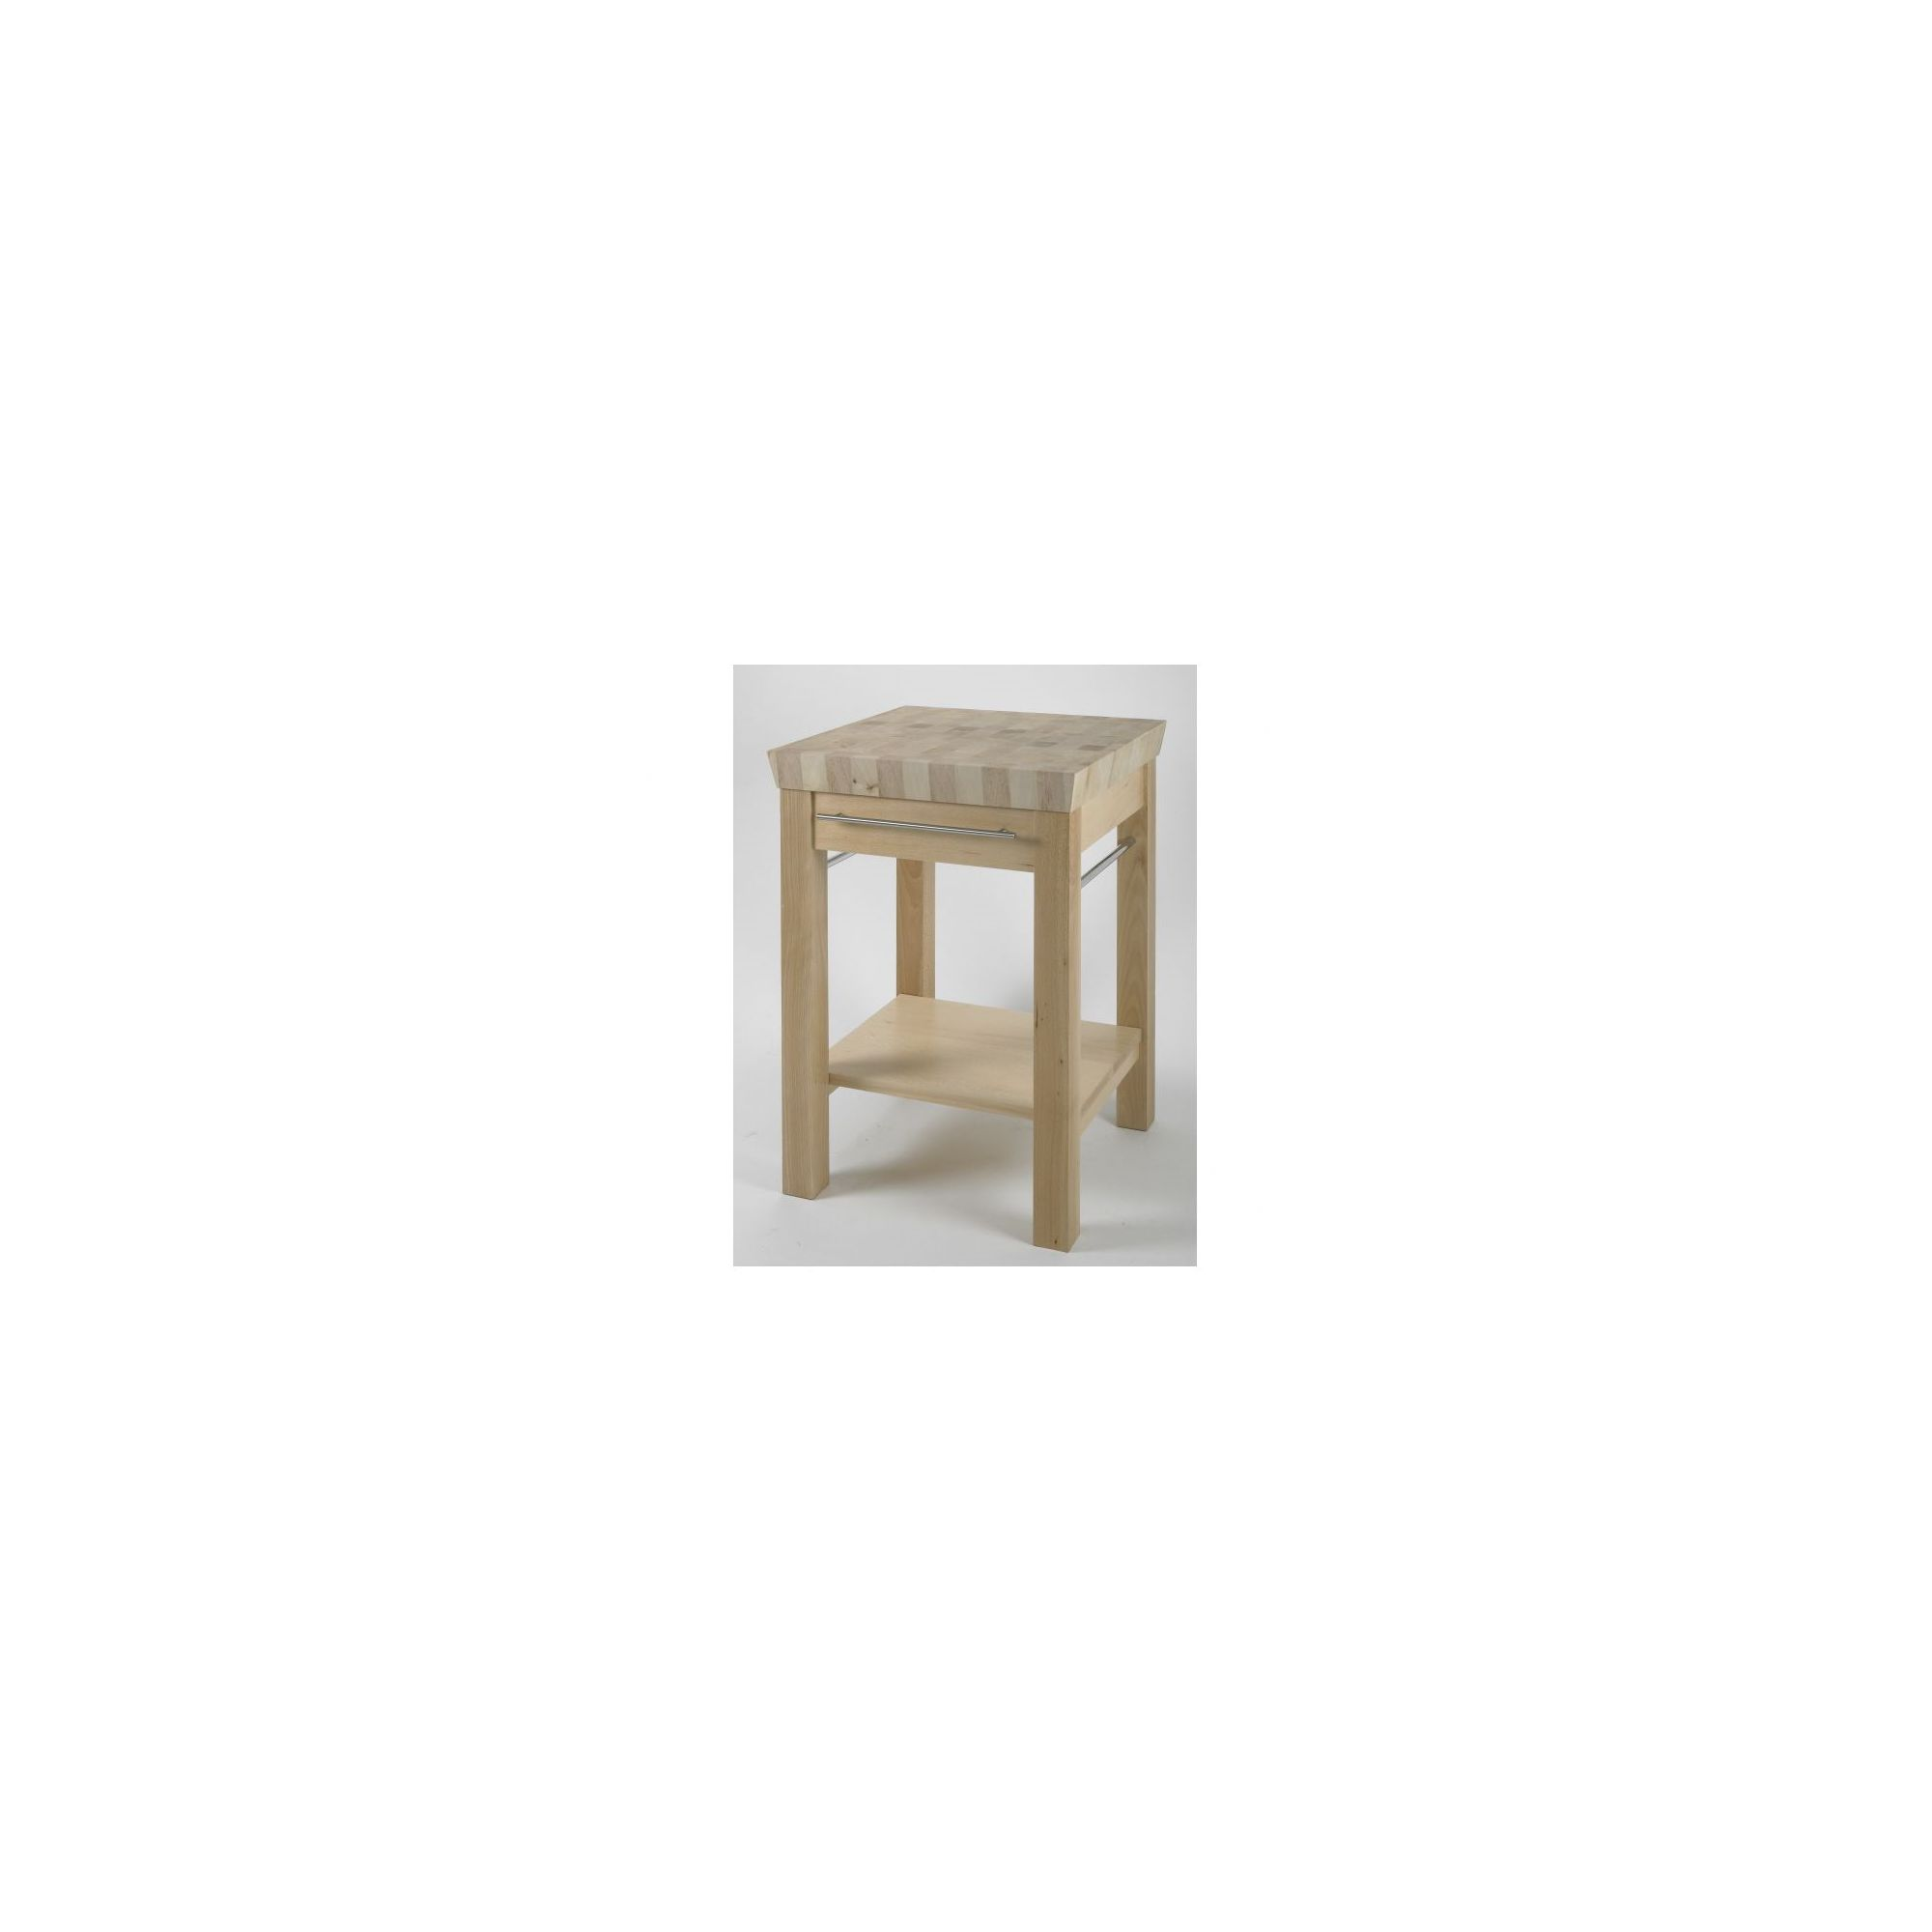 Chabret Occasional Furniture - 90cm X 60cm X 60cm at Tescos Direct